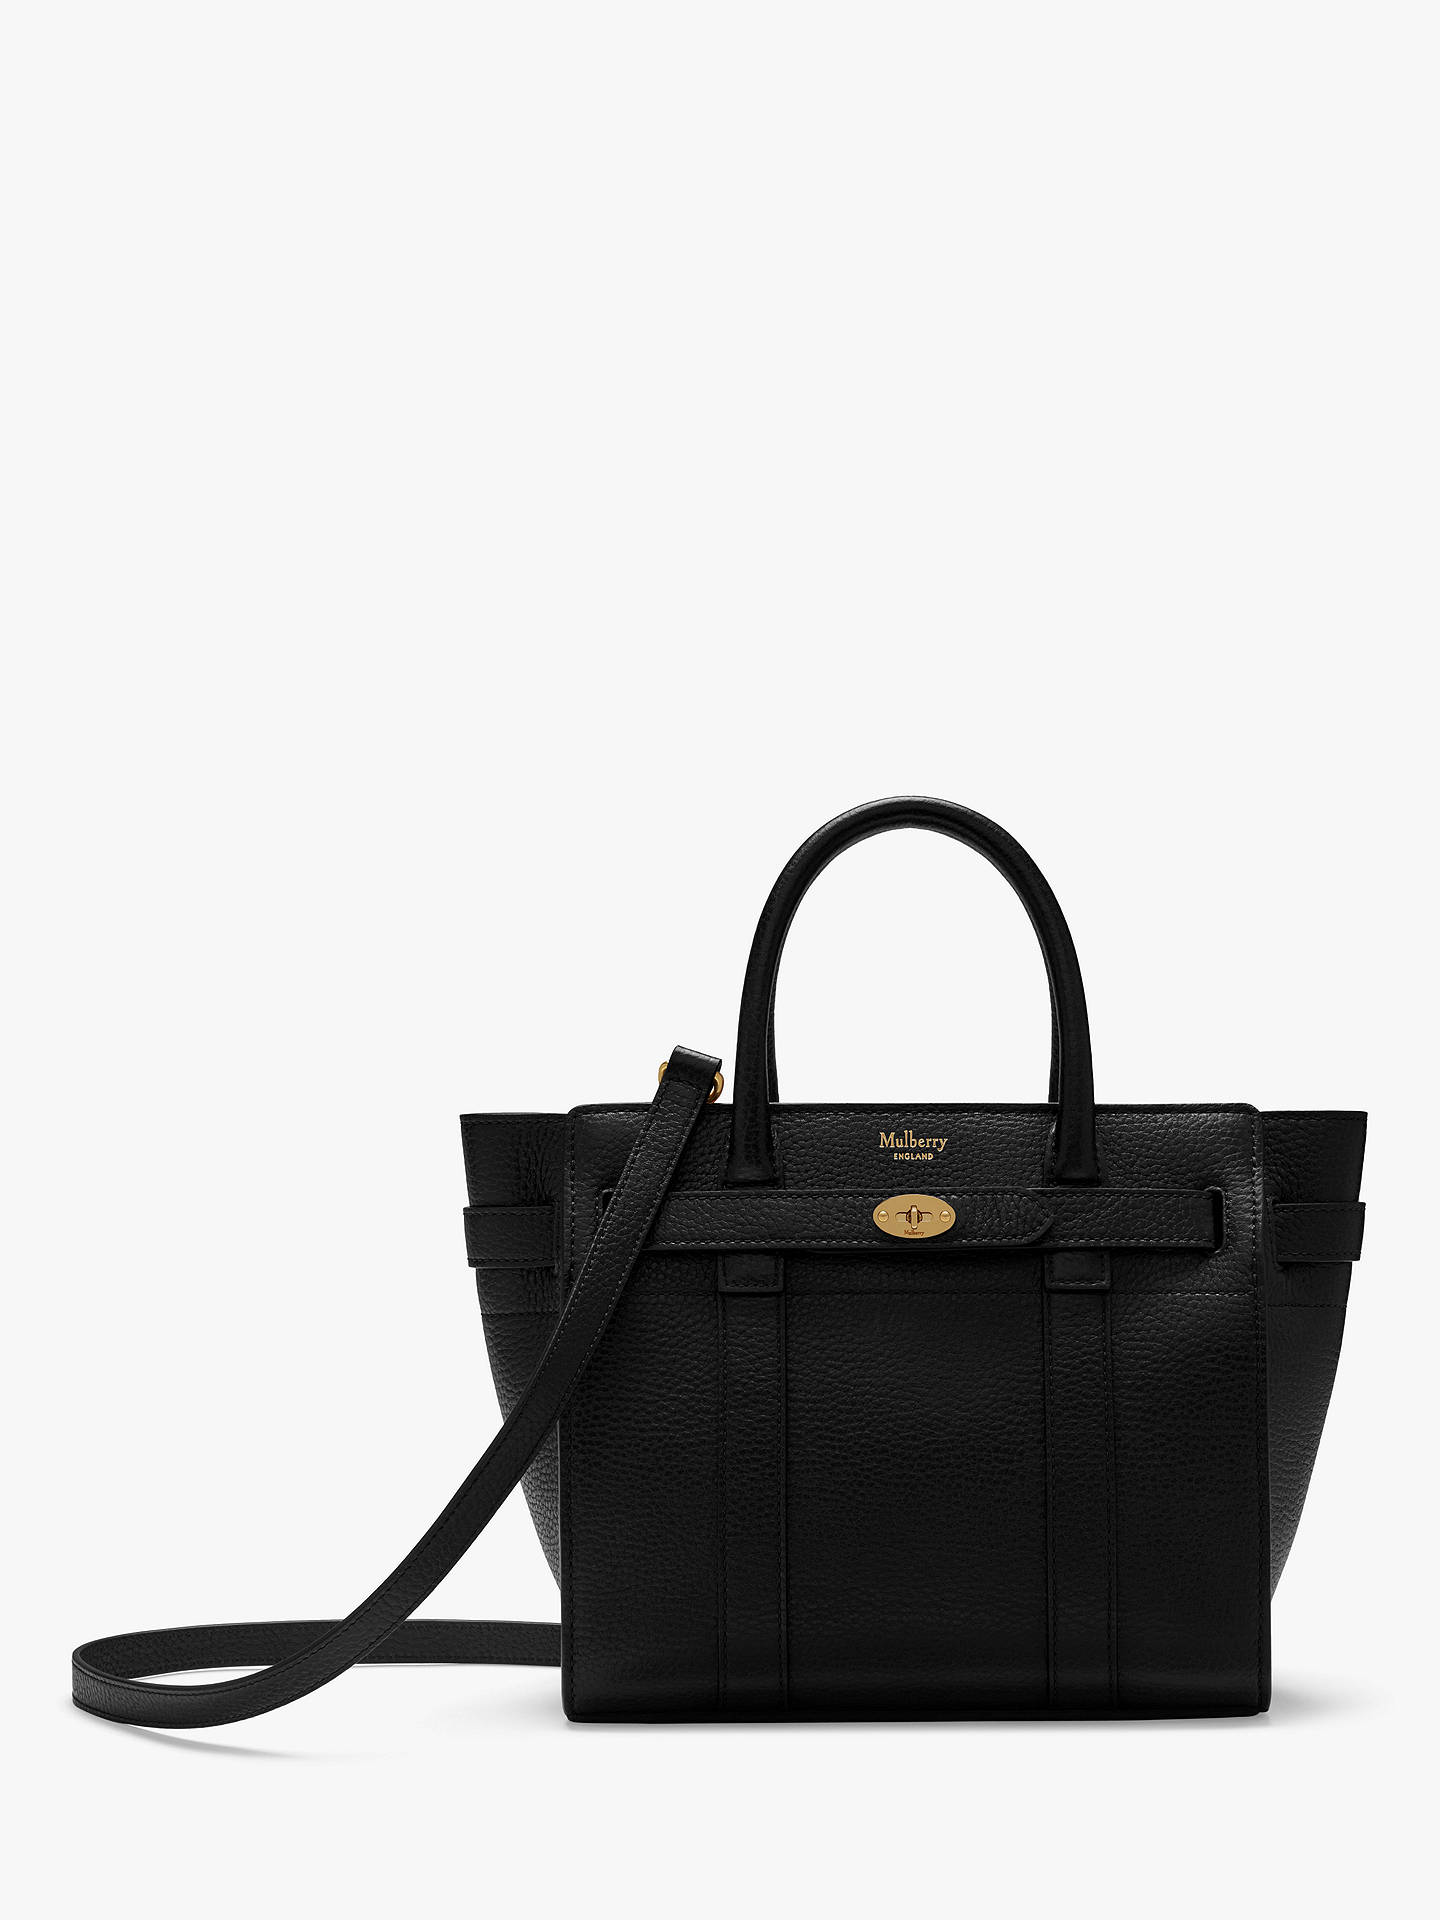 e4b90fb00 Buy Mulberry Mini Bayswater Zipped Classic Grain Leather Tote Bag, Black  Online at johnlewis.